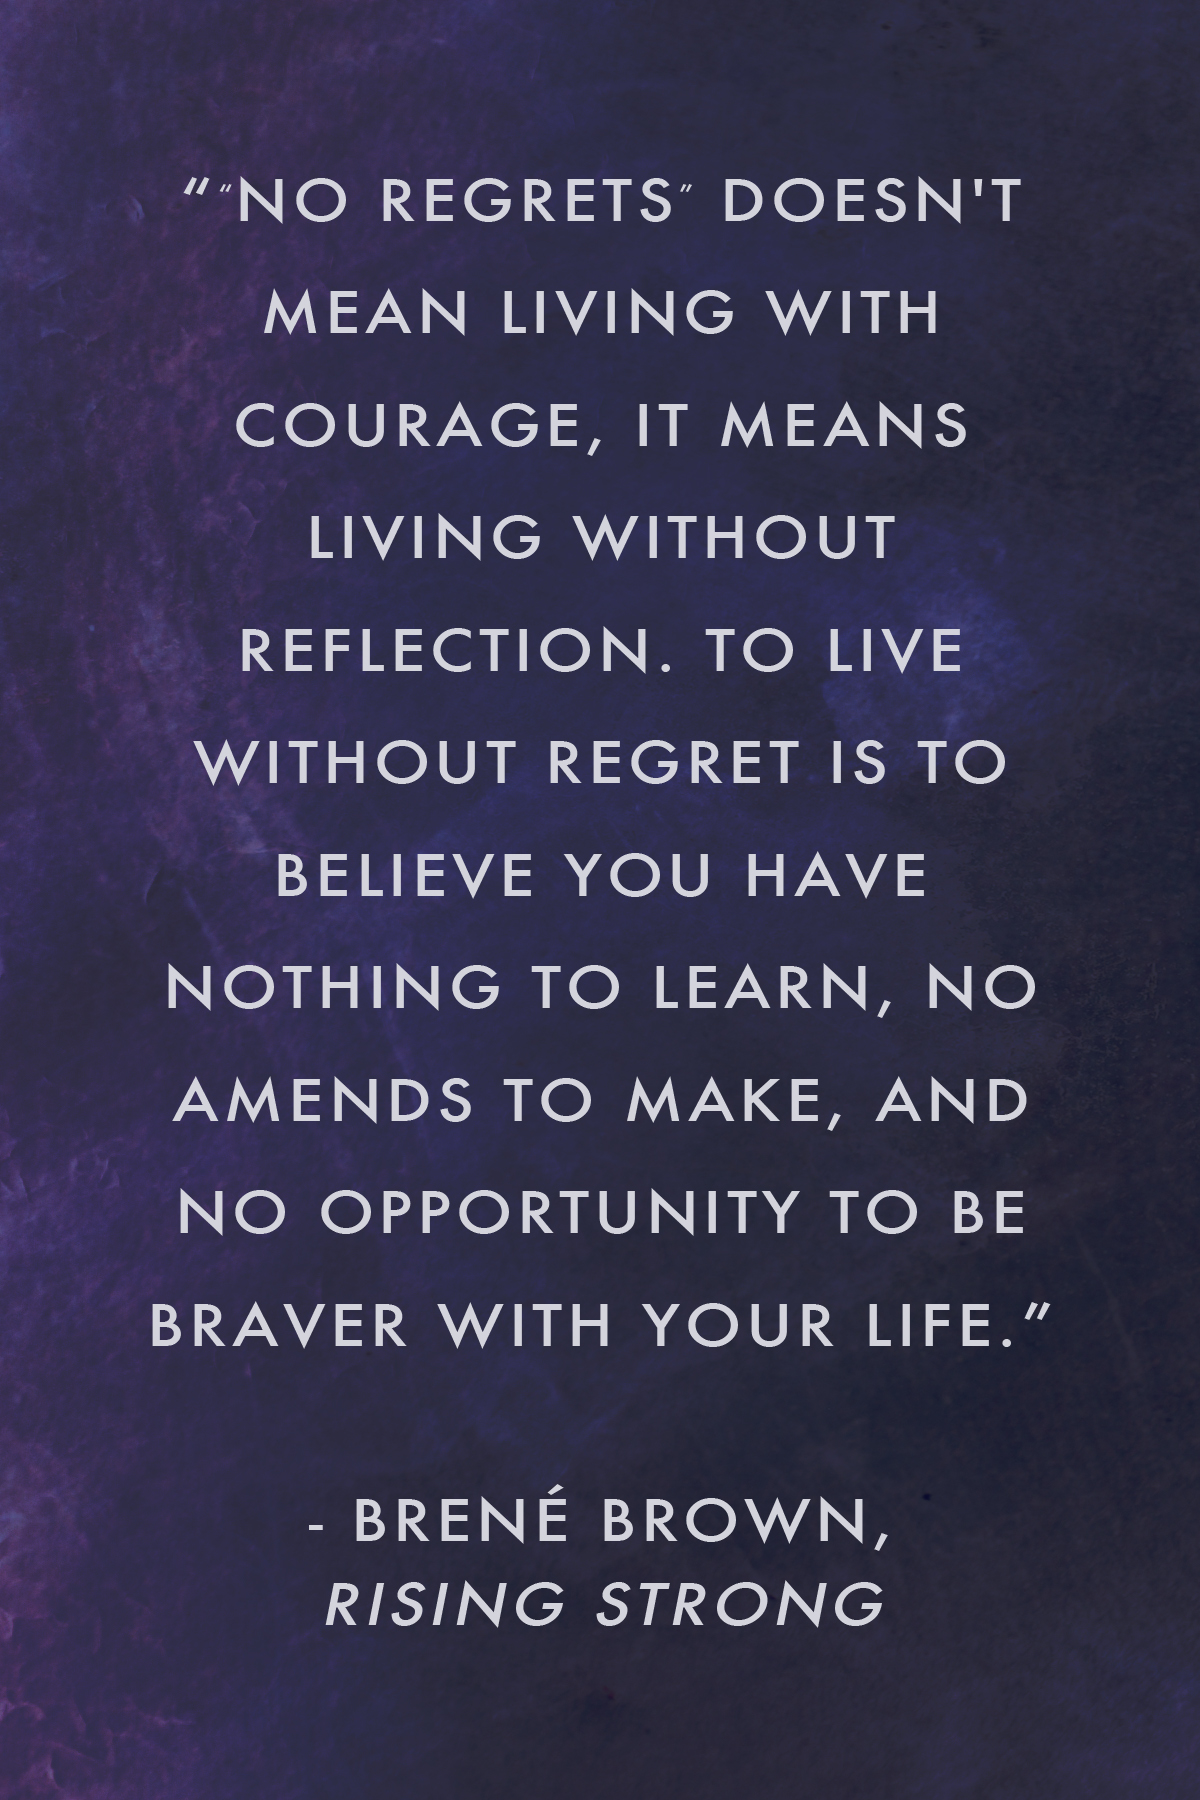 Strong Quotes About Life Brené Brown On Regret  Quotes From Rising Strong